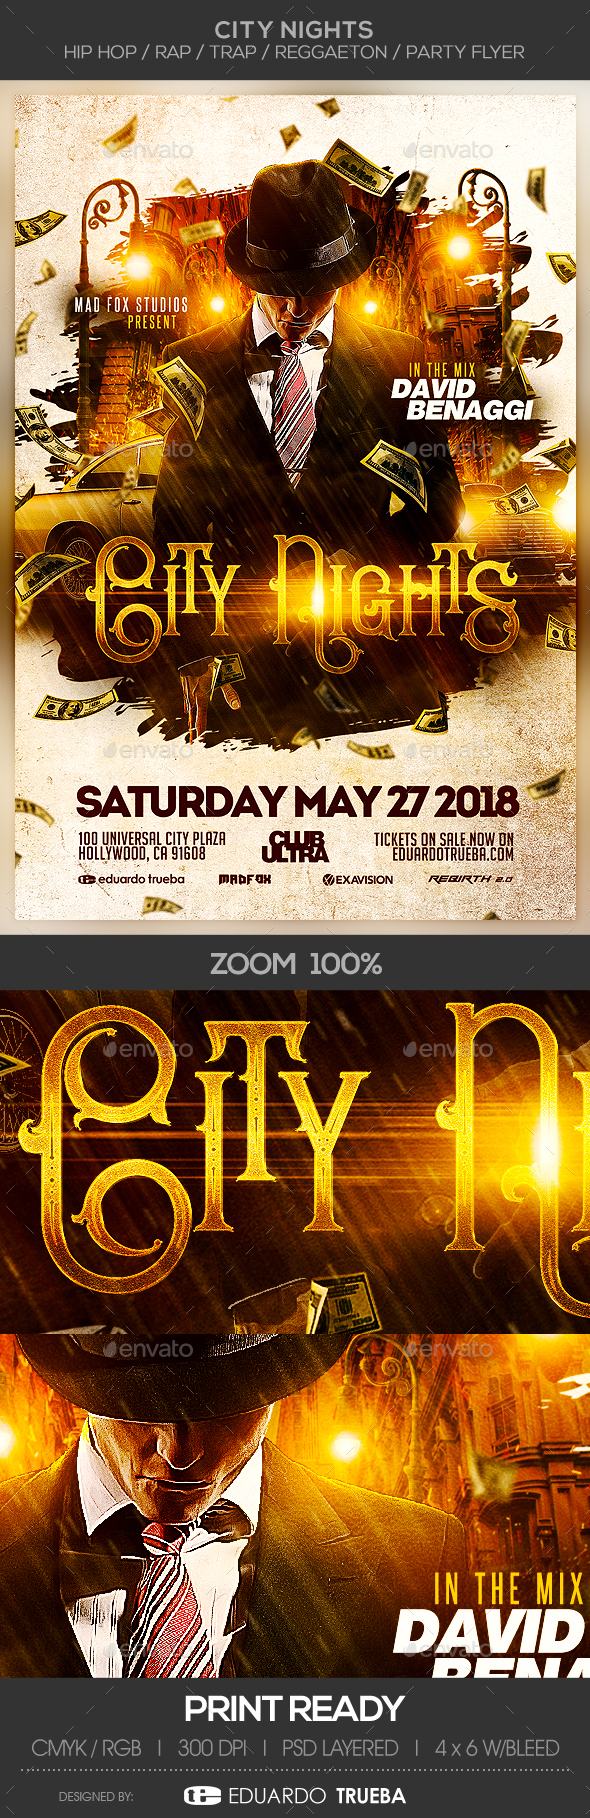 City Nights - Hip Hop / Rap / Trap / Reggaeton Party Flyer - Events Flyers